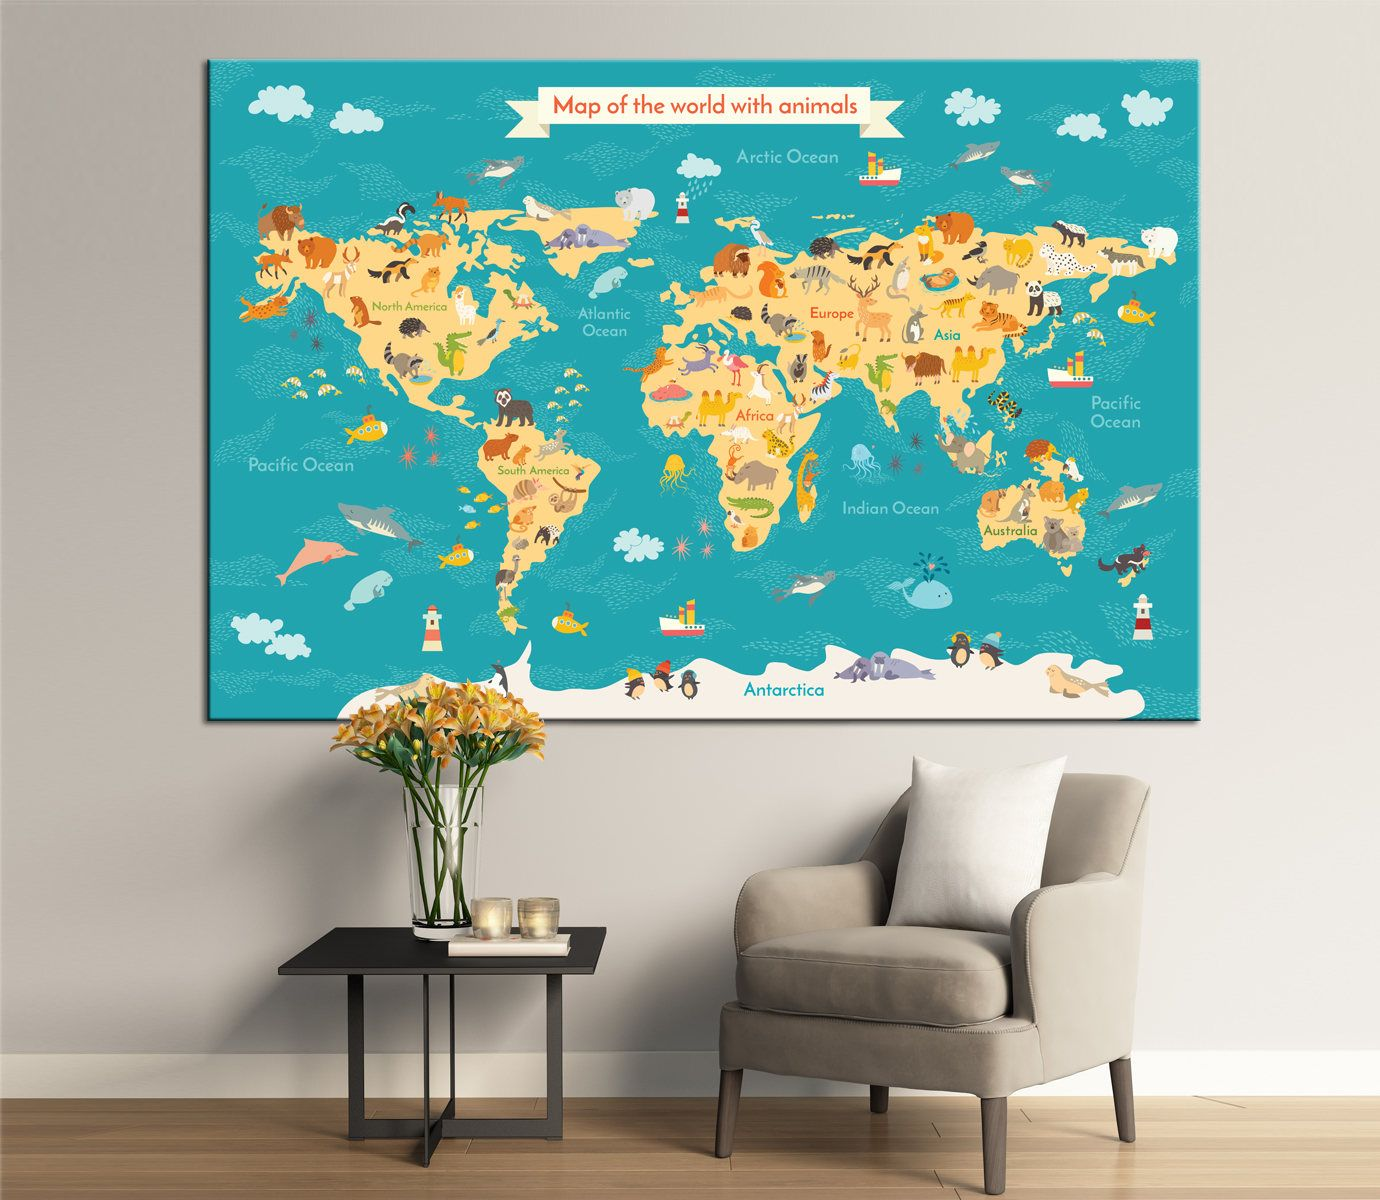 Large world map for kids with wildlife animals and plants preschool large world map for kids with wildlife animals and plants preschool cartoon globe with animals gumiabroncs Image collections